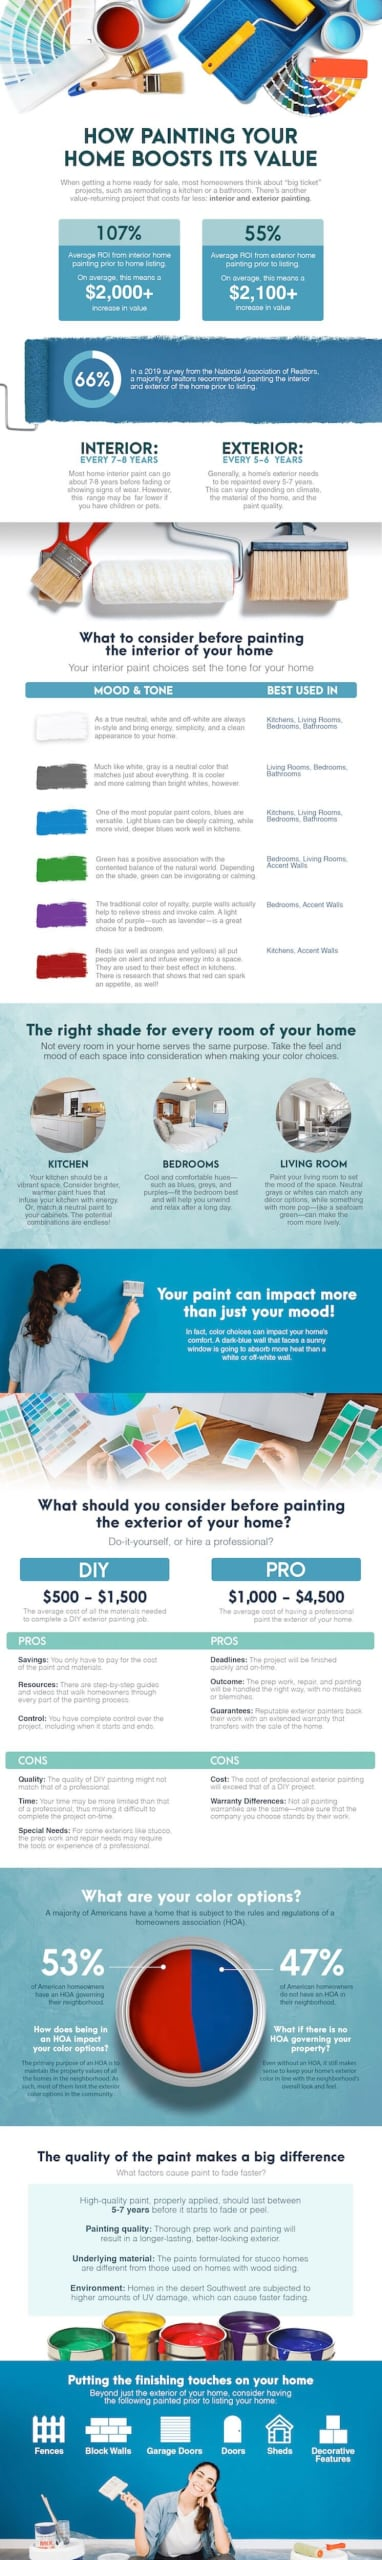 This infographic breaks down how exterior painting leads to a home value boost ahead of listing and sale.